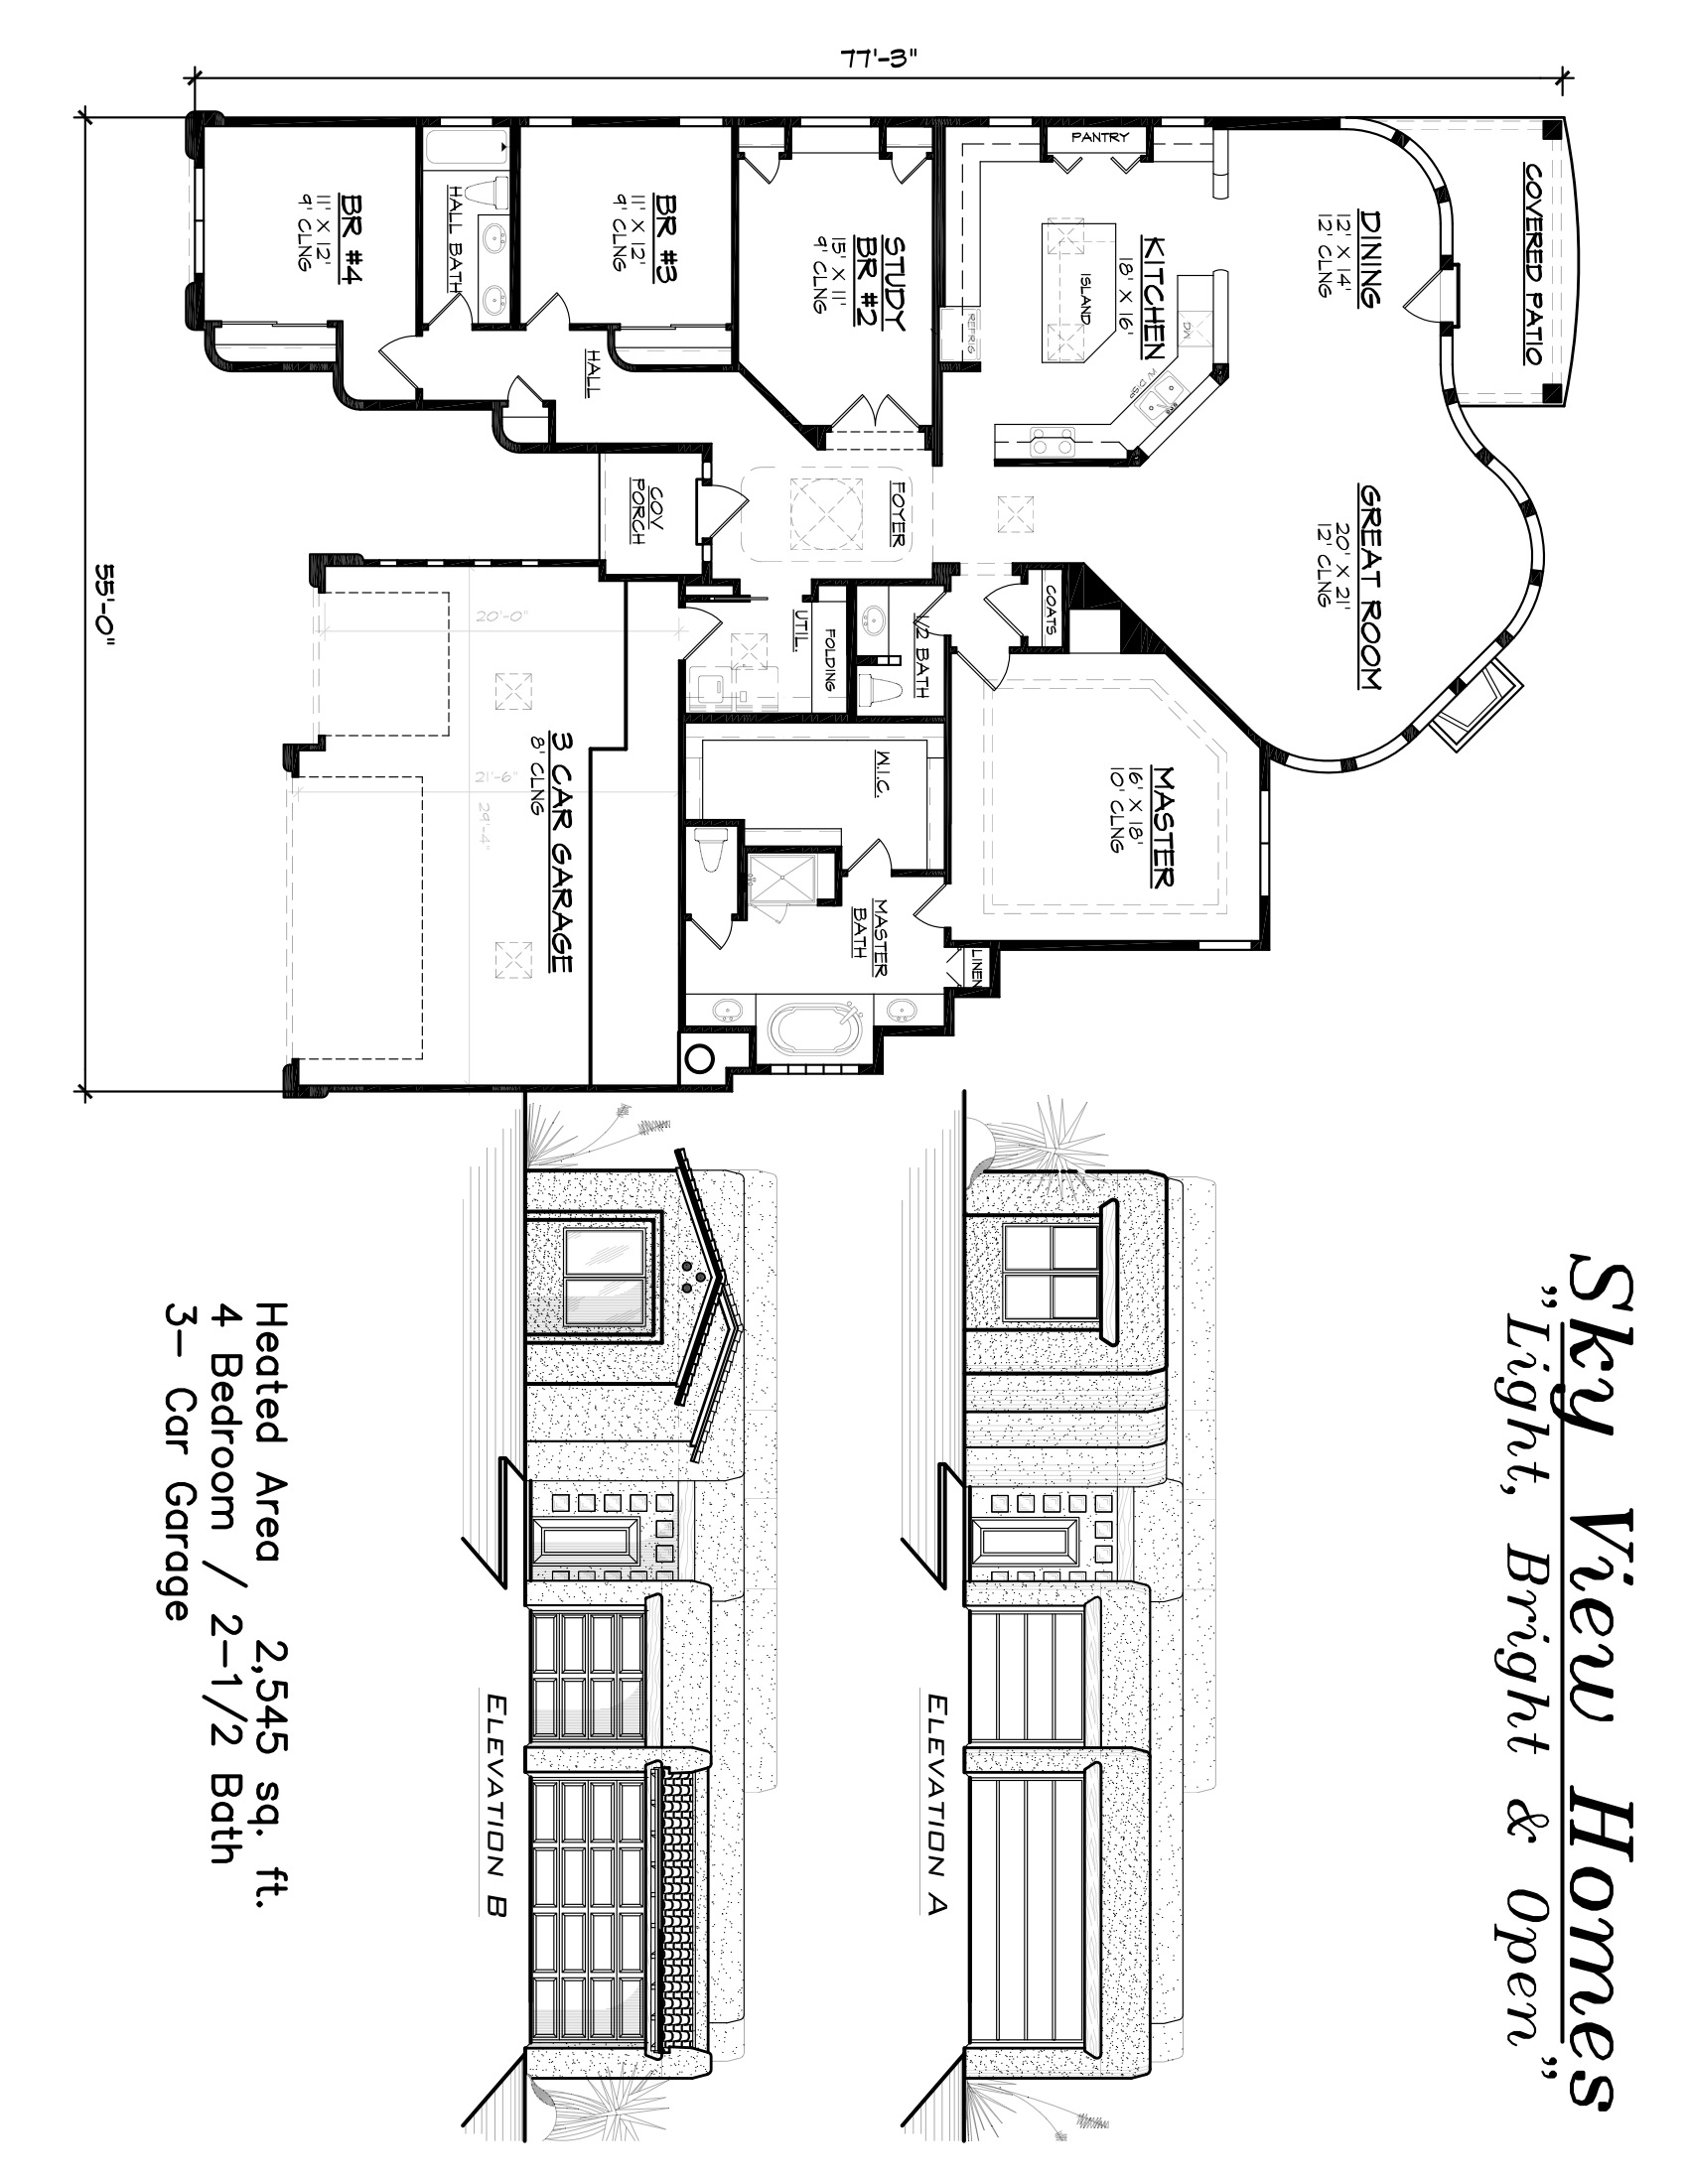 Sky view homes andalusica floor plans albuquerque new for New mexico house plans